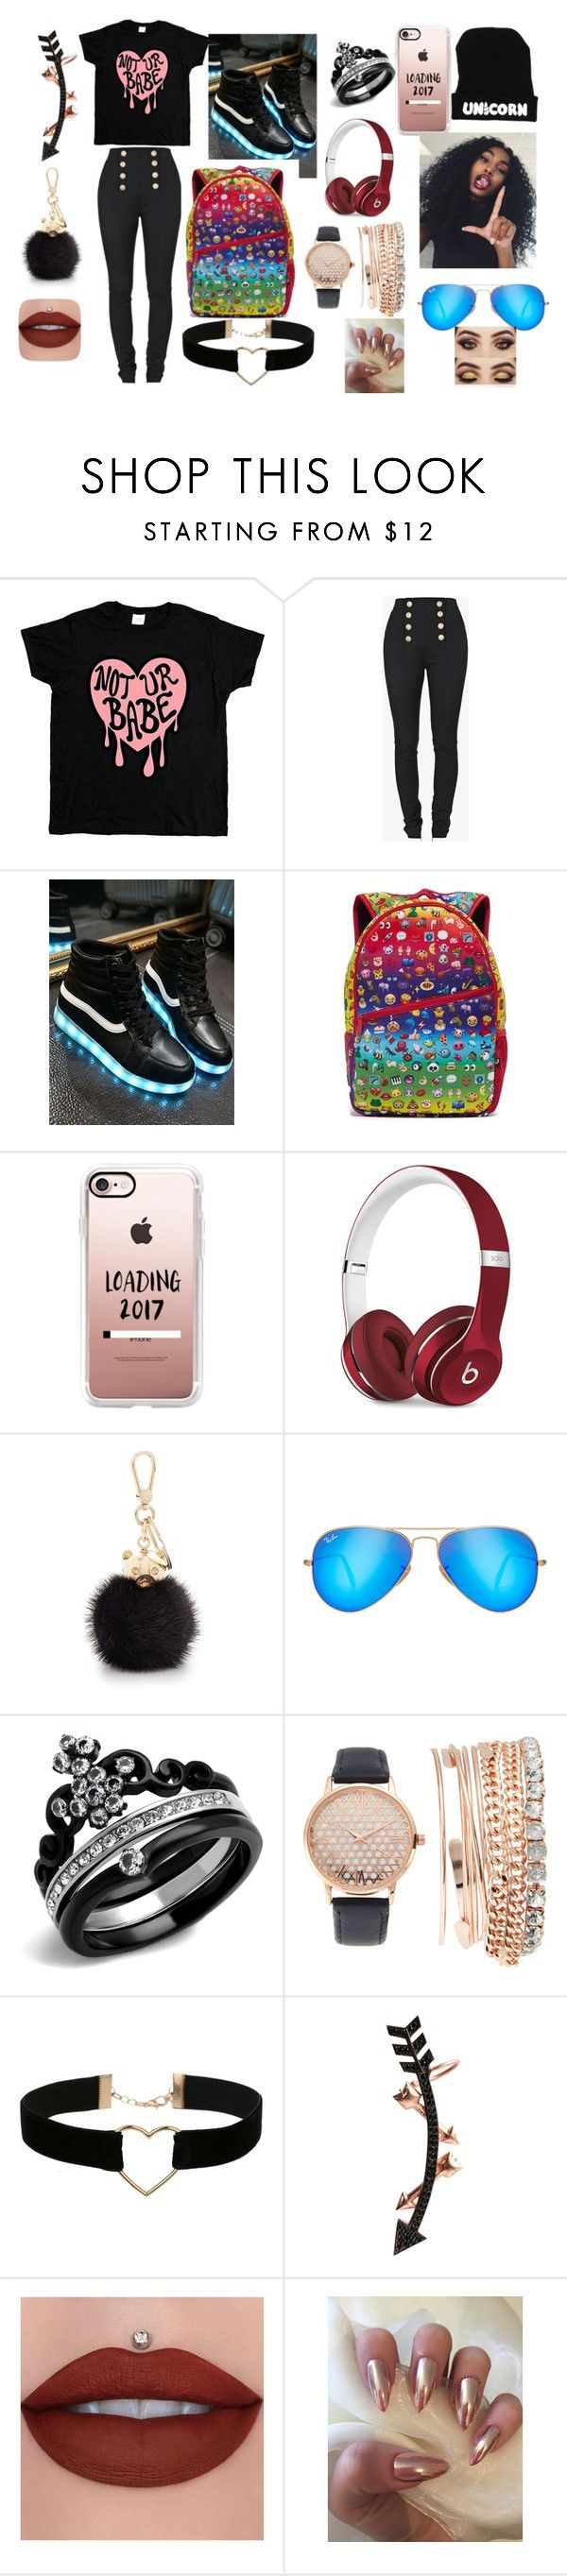 """How i feel"" by panther-bear ❤ liked on Polyvore featuring Balmain, Terez, Casetify, Beats by Dr. Dre, Furla, Ray-Ban, Jessica Carlyle, Miss Selfridge and Wild Hearts"